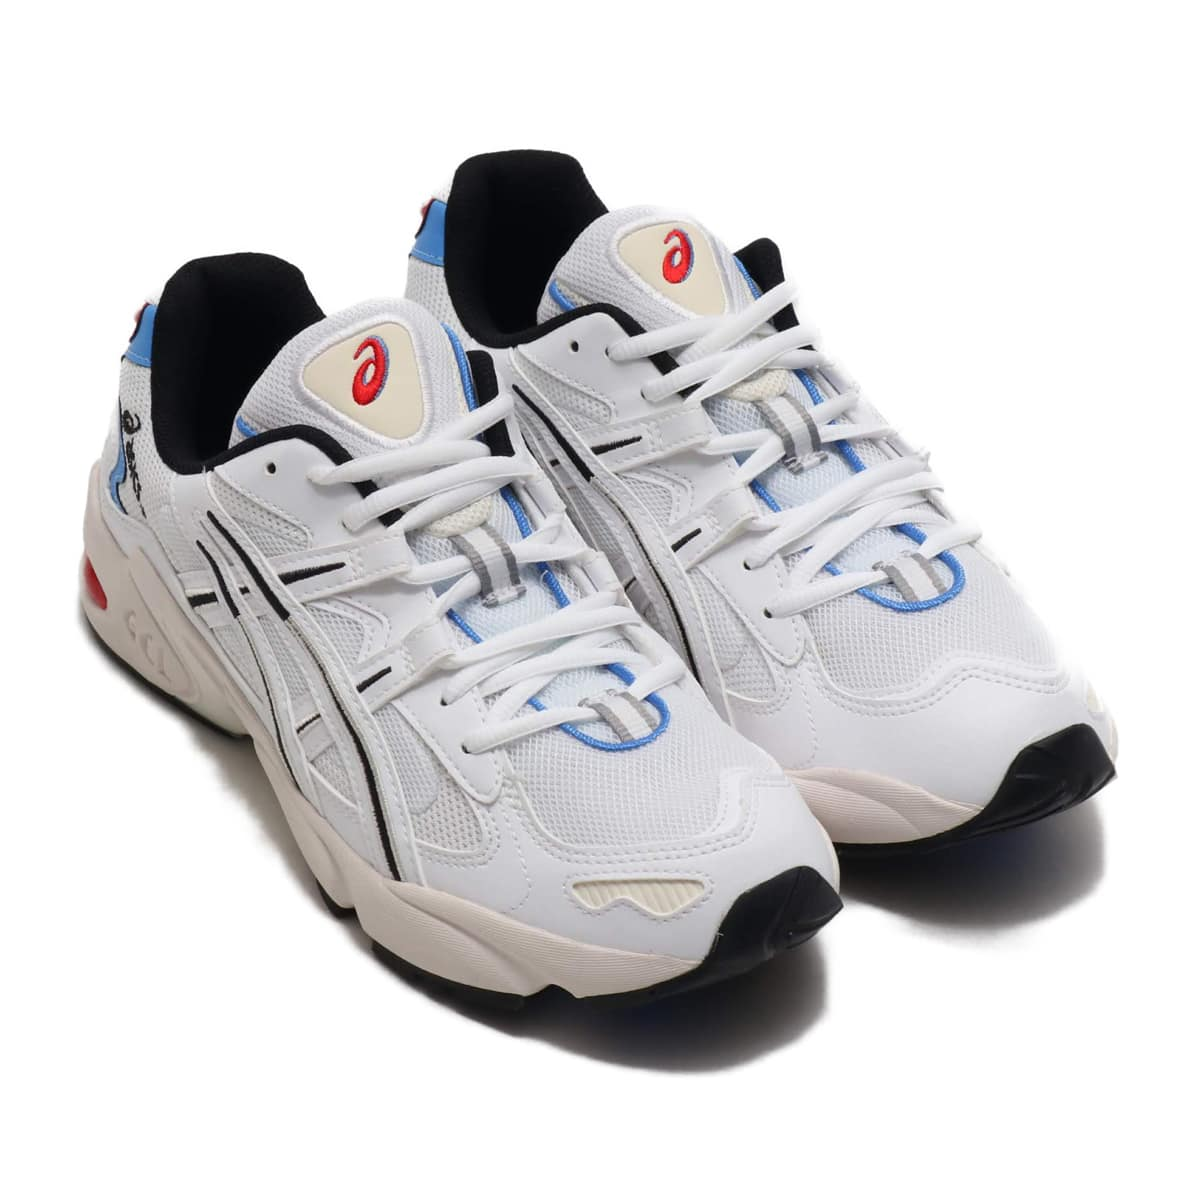 asics GEL-KAYANO 5 OG WHITE/W 20SS-I_photo_large